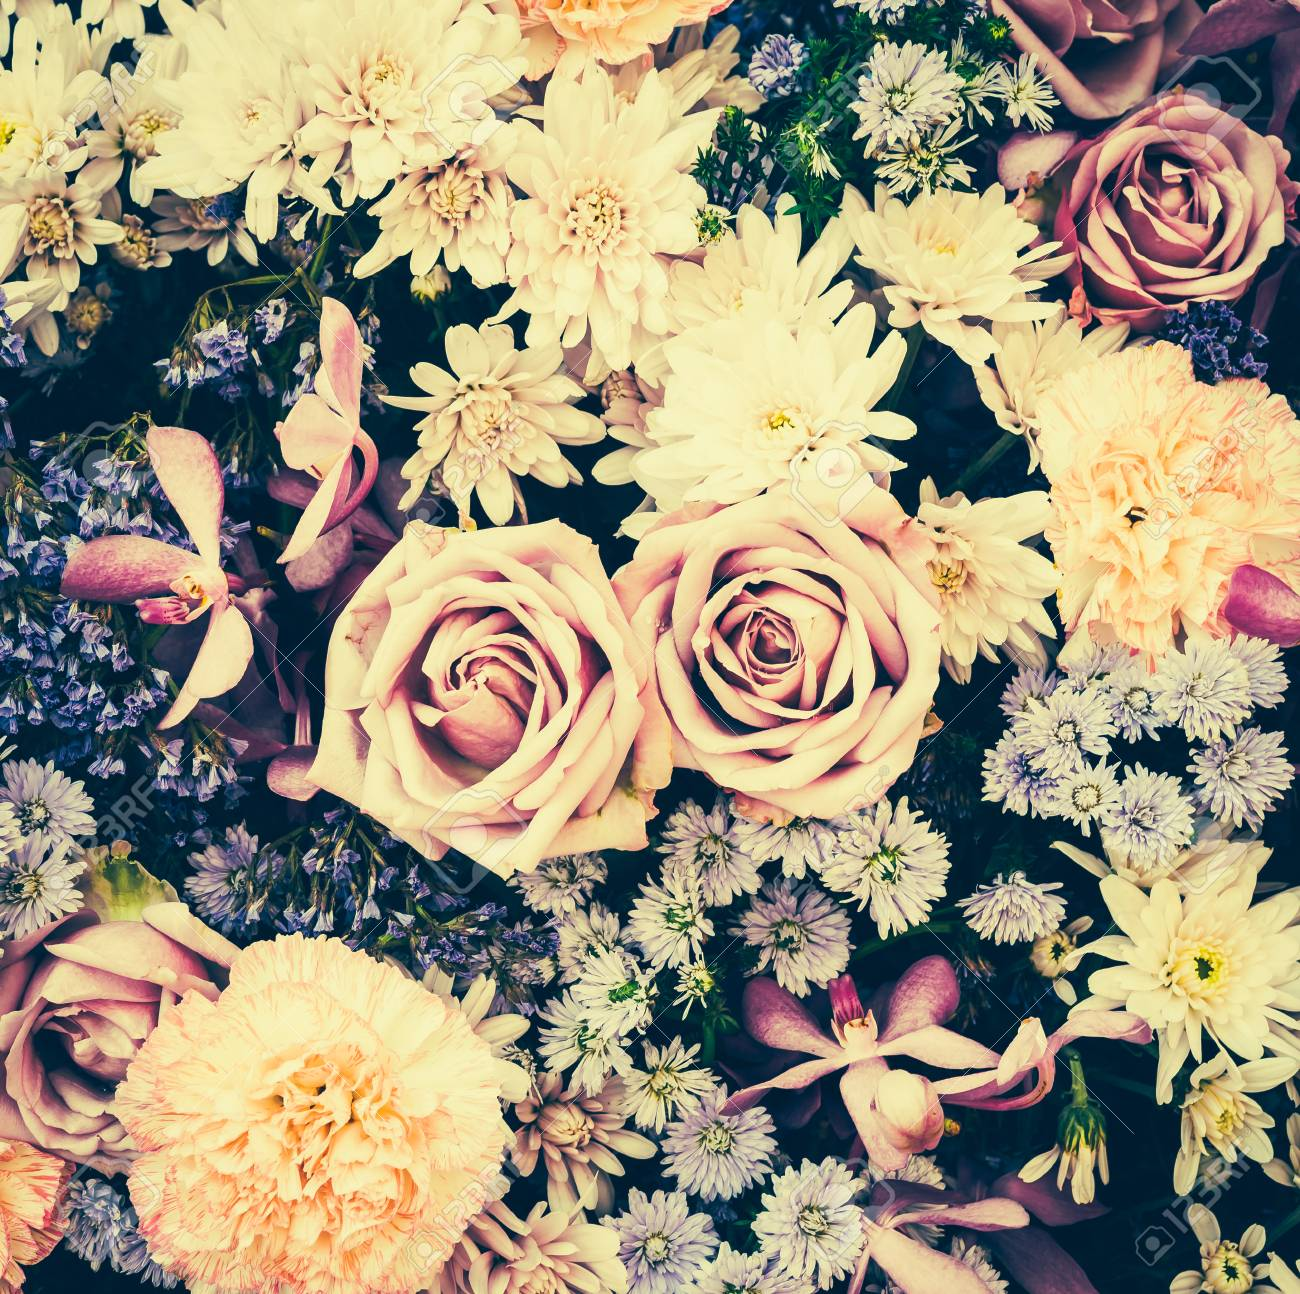 Vintage Old Flower Backgrounds Vintage Effect Style Pictures